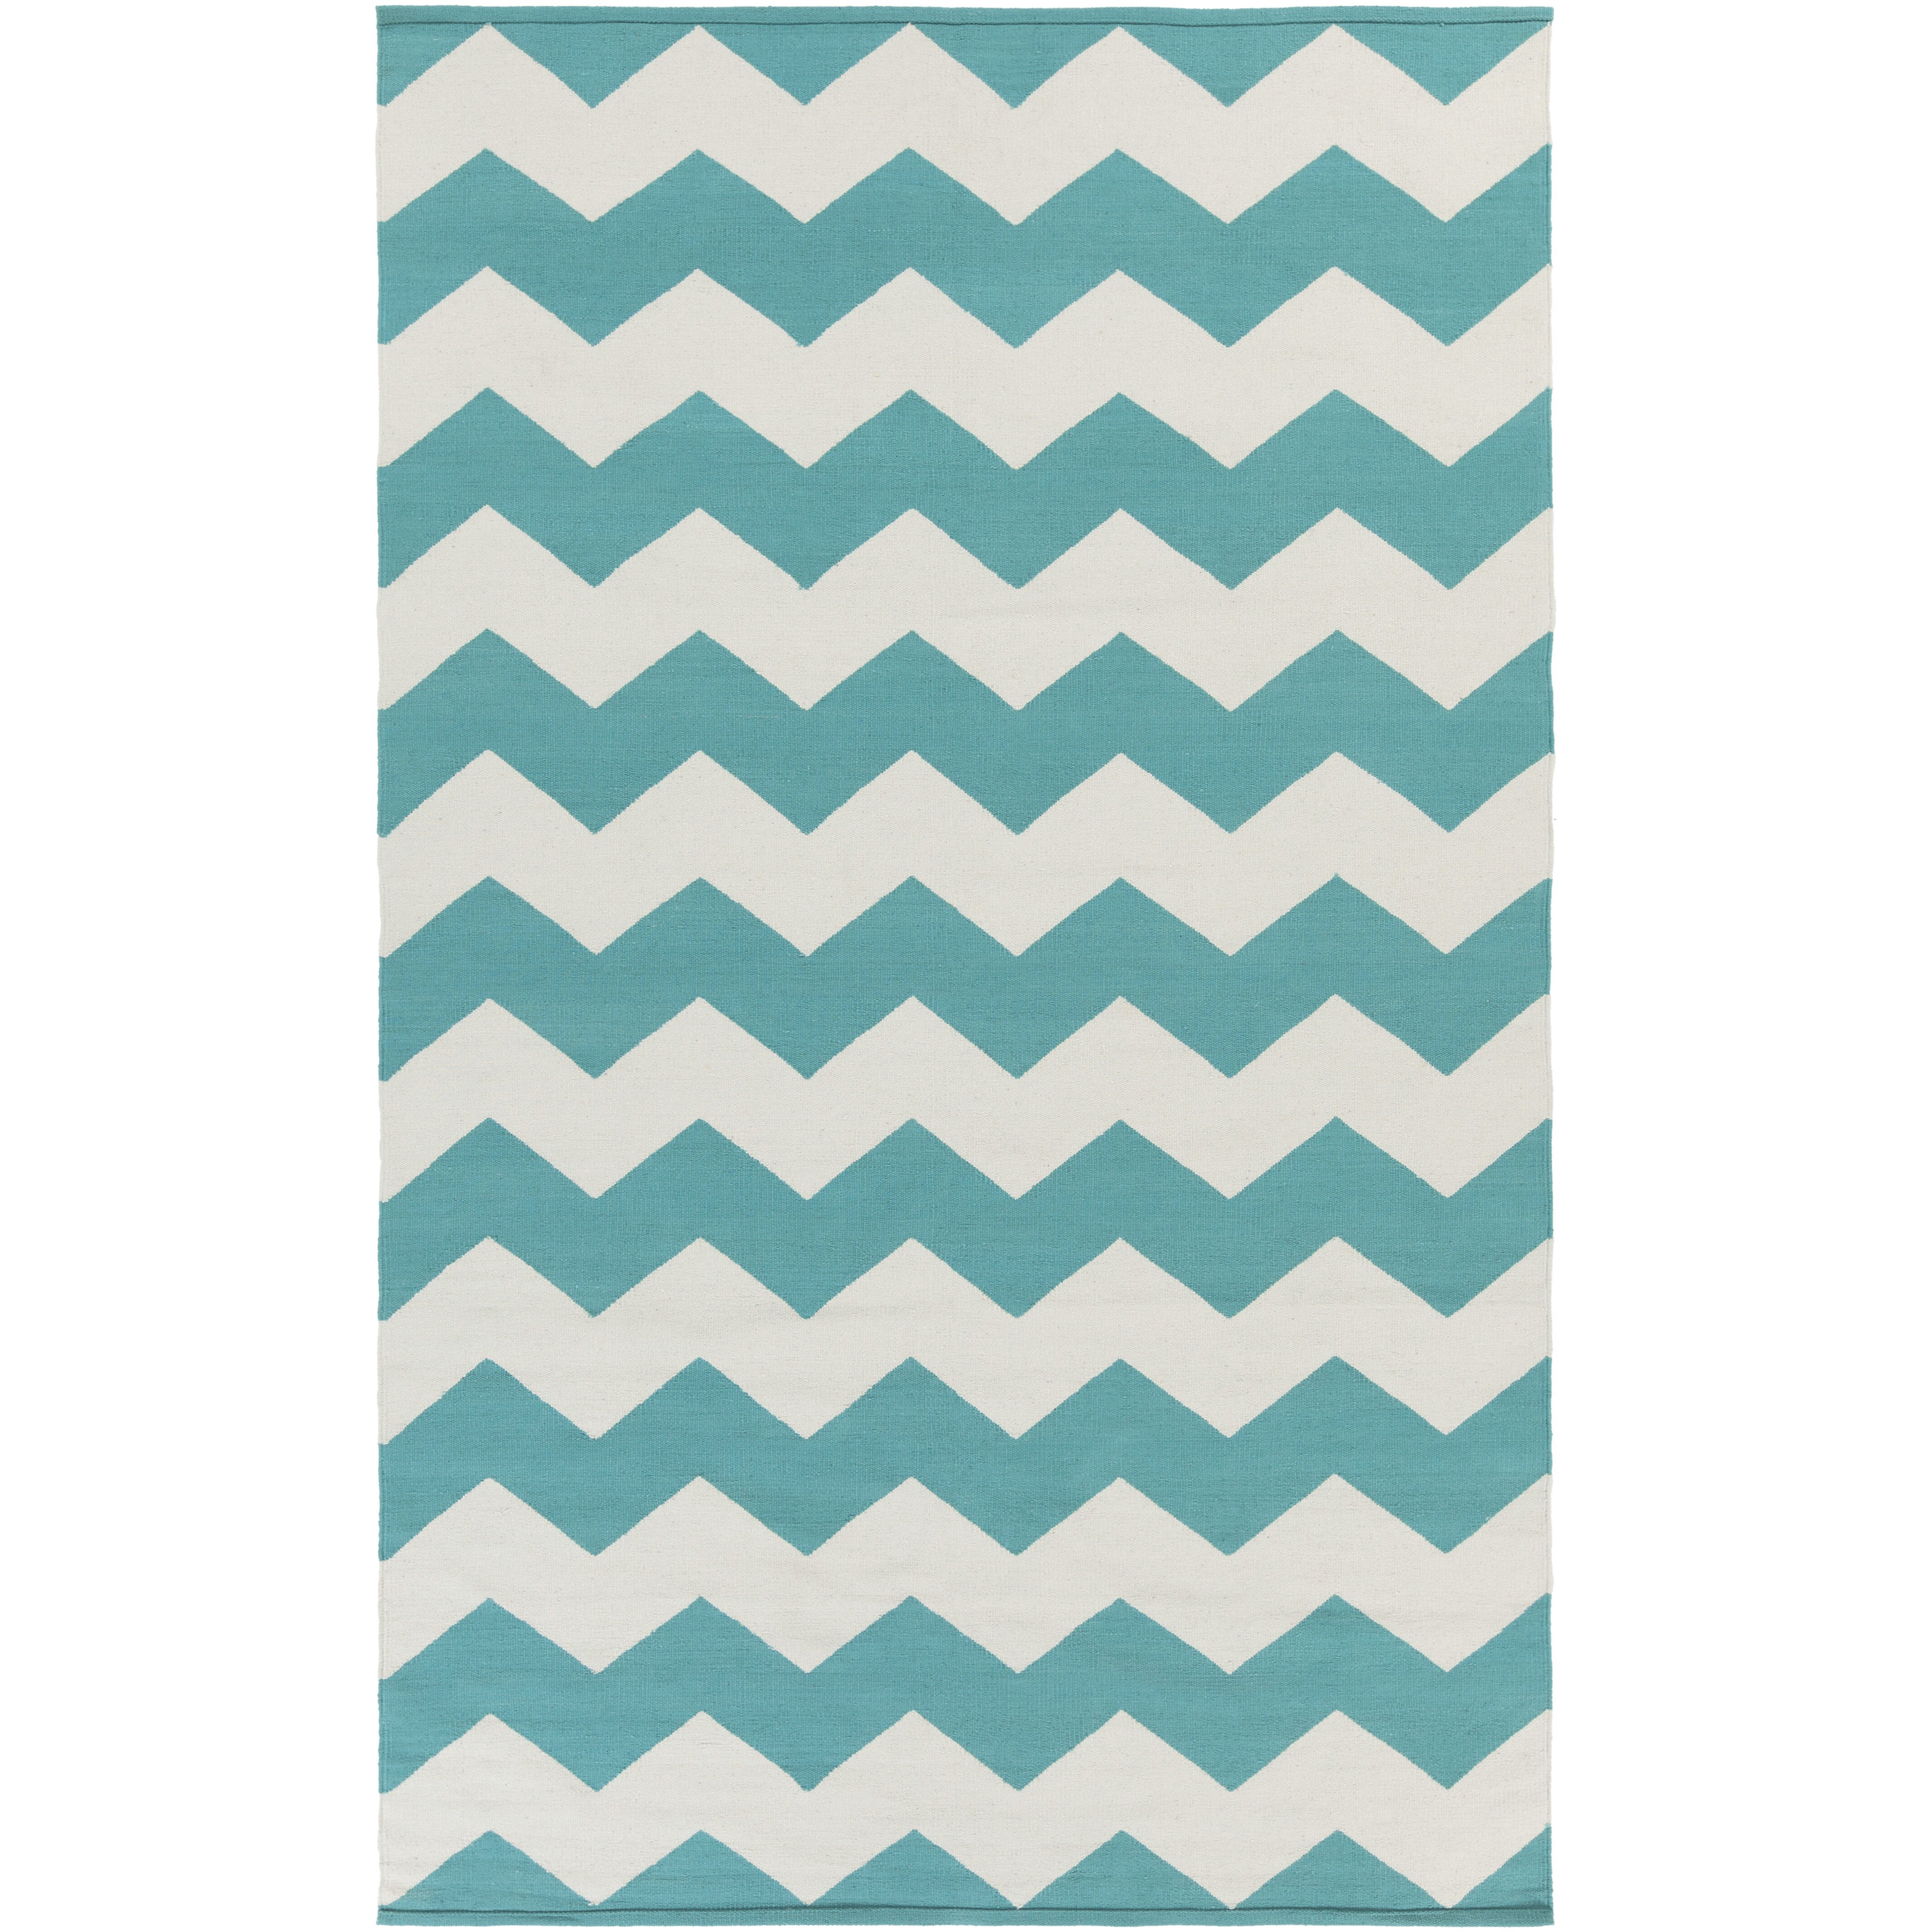 Artistic Weavers Vogue Teal Chevron Collins Area Rug